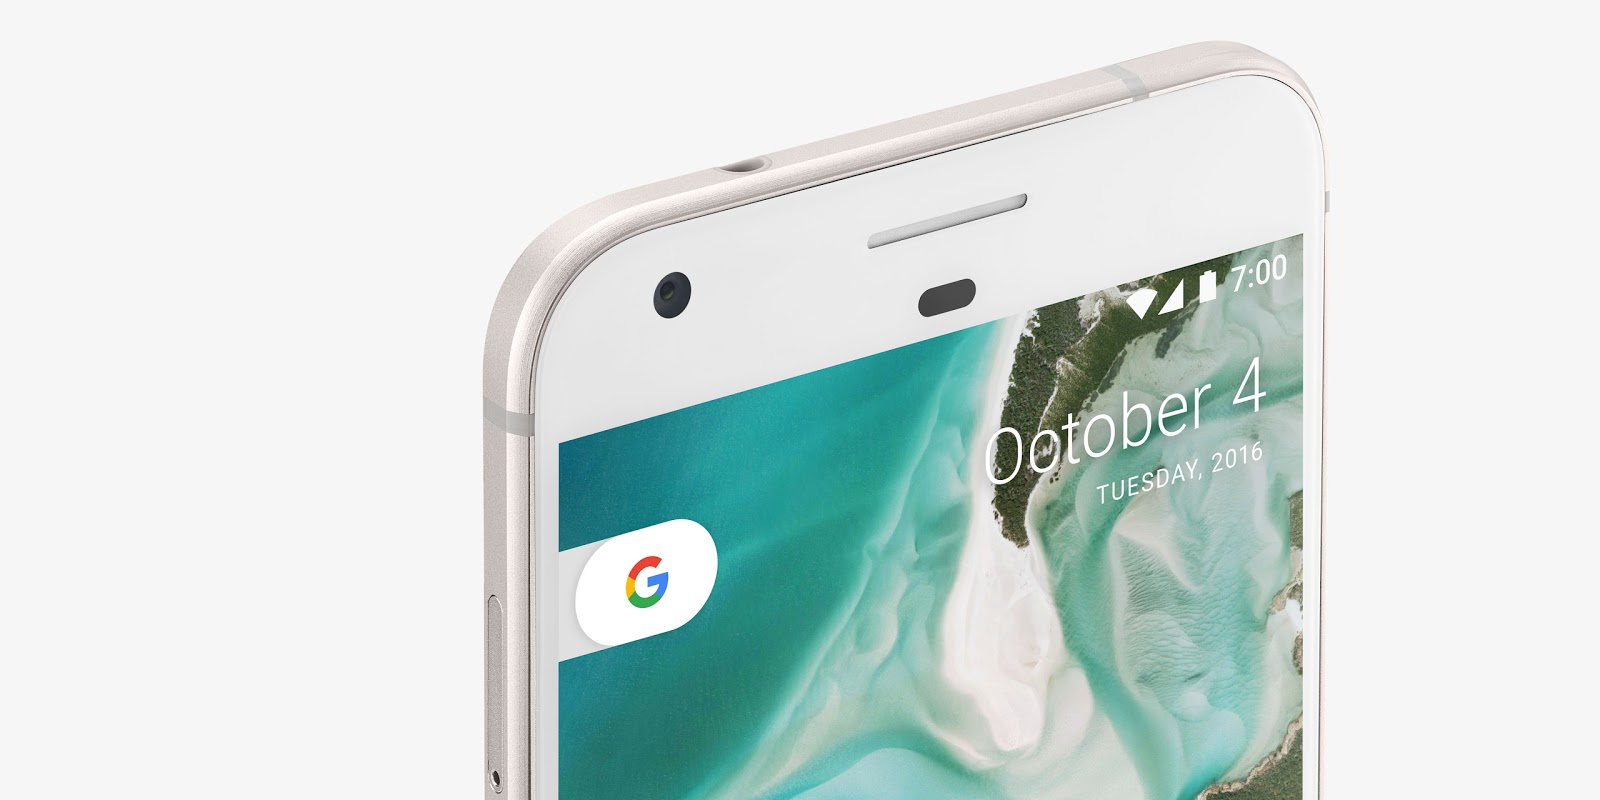 Google Acknowledges Unreliable Double-tap To Wake Gesture on Pixel